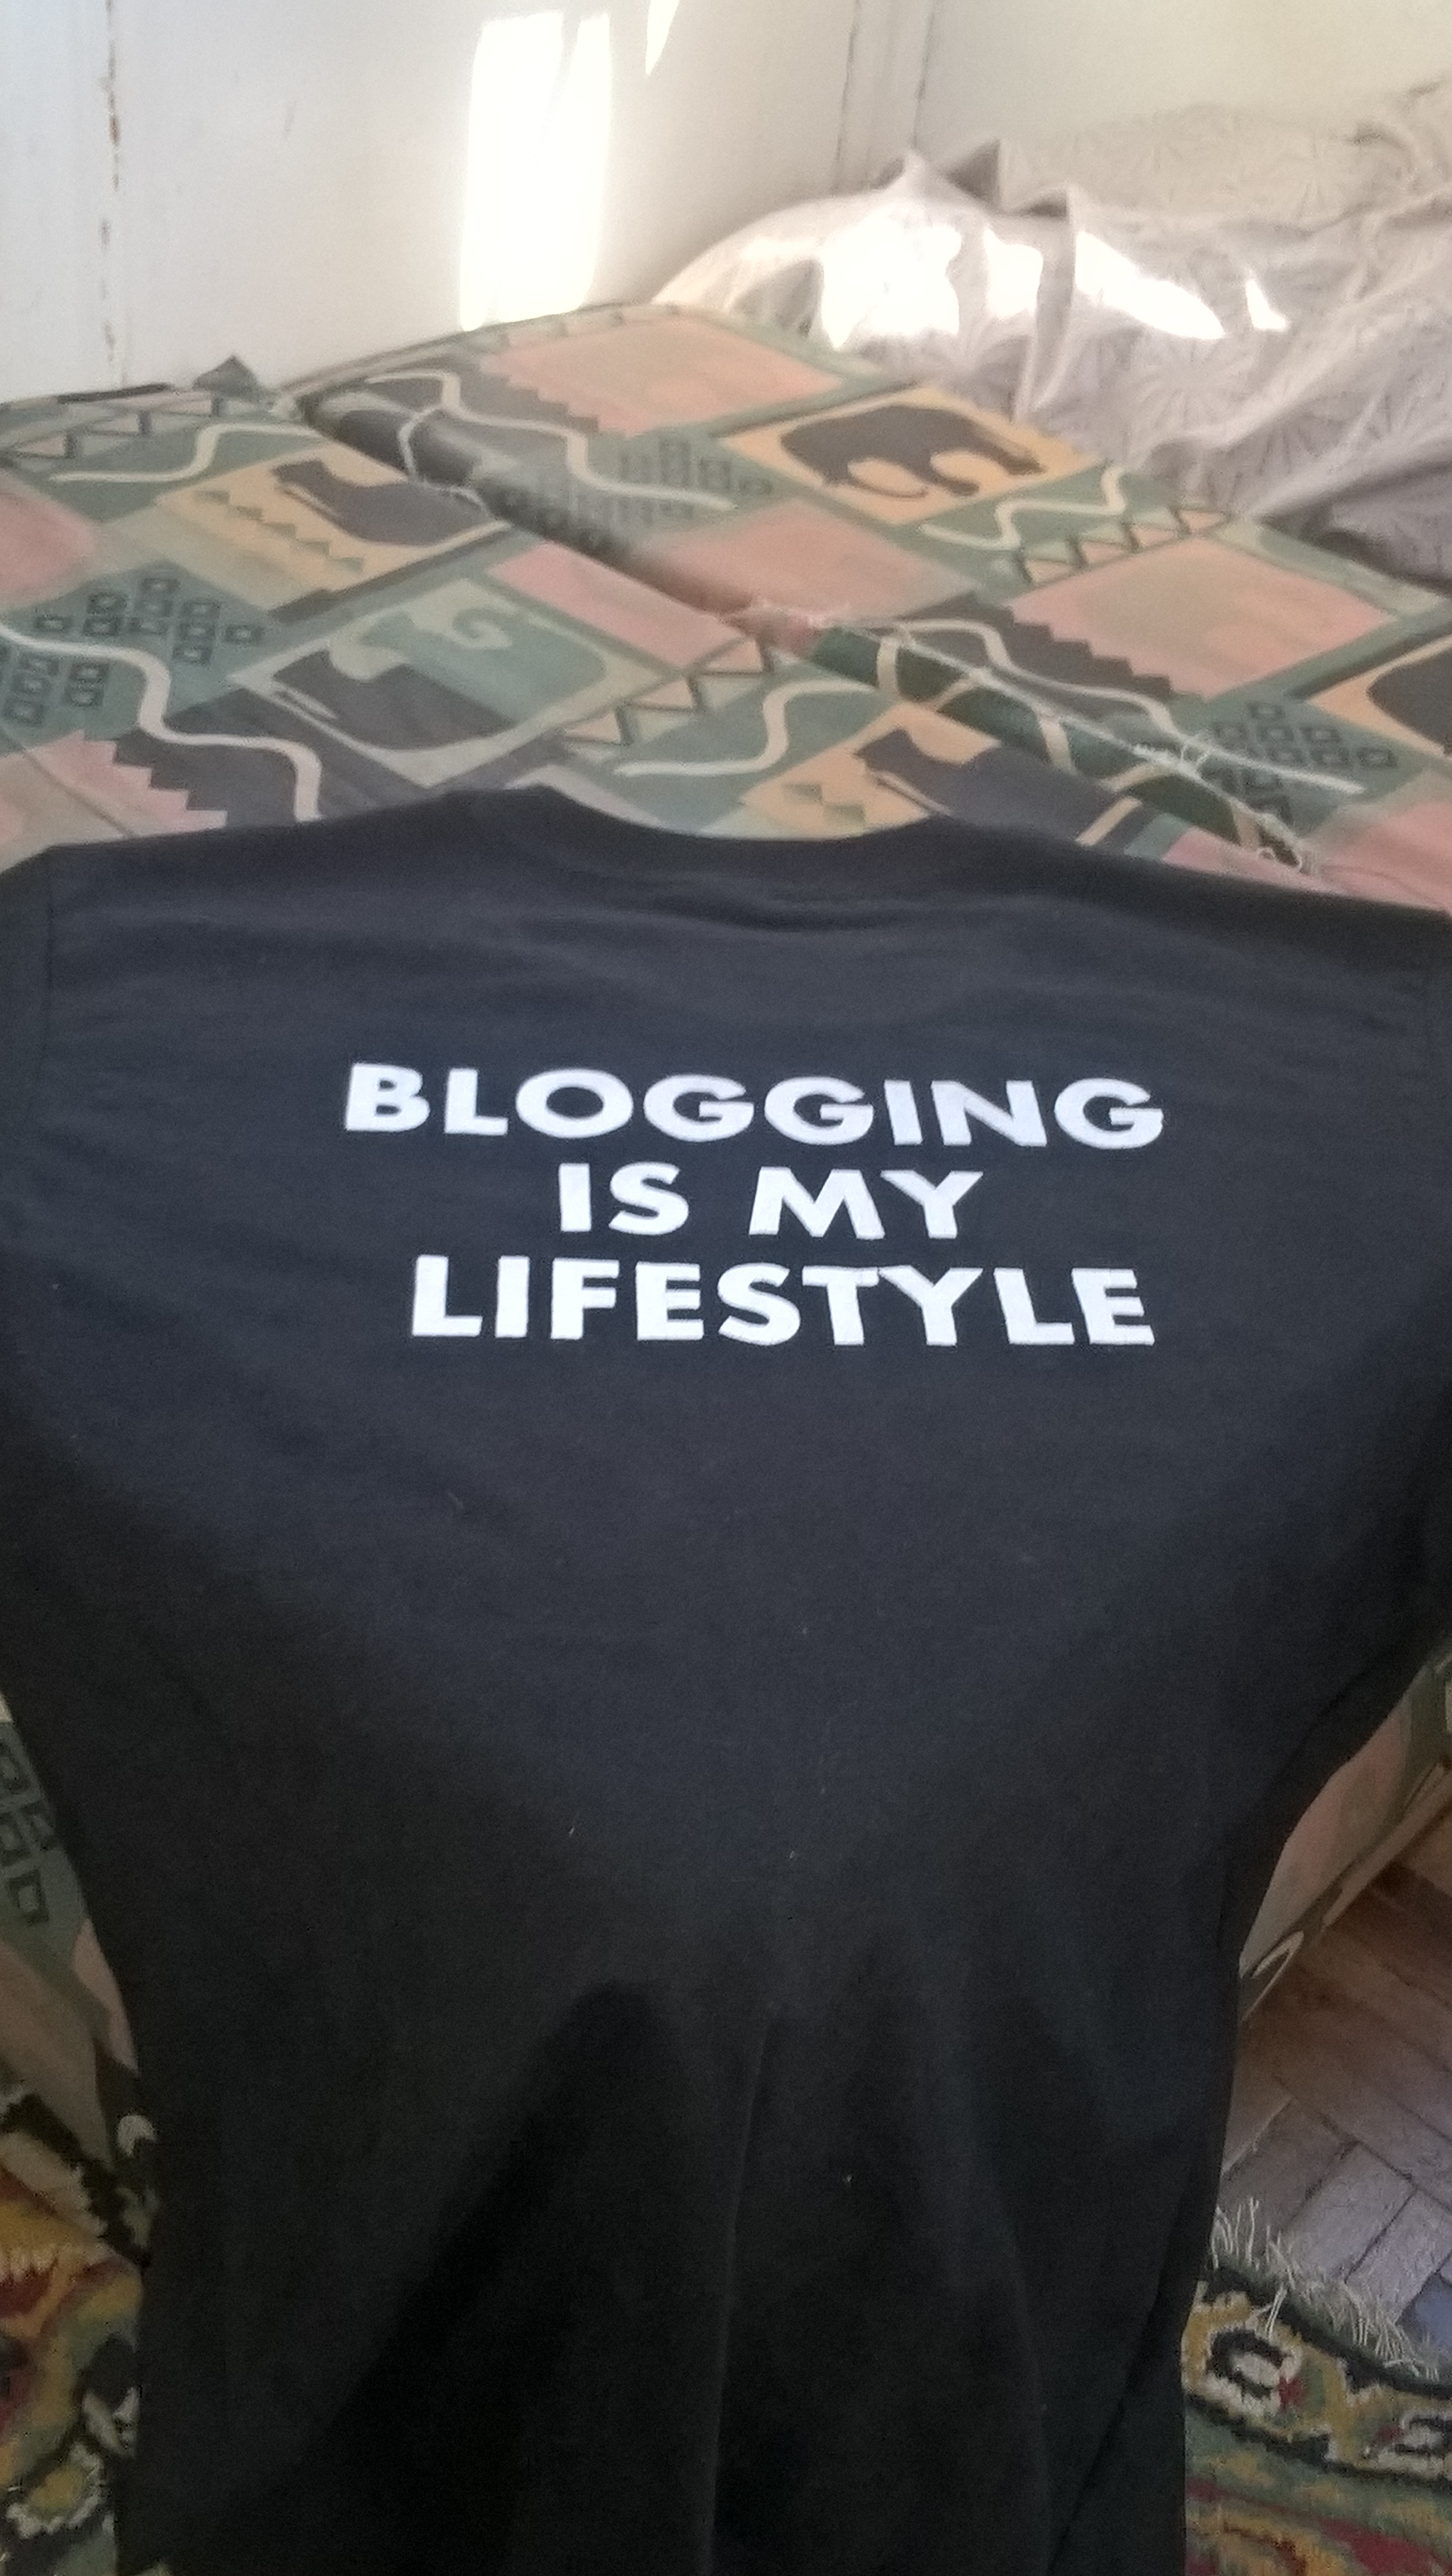 Blogging is my lifestyle